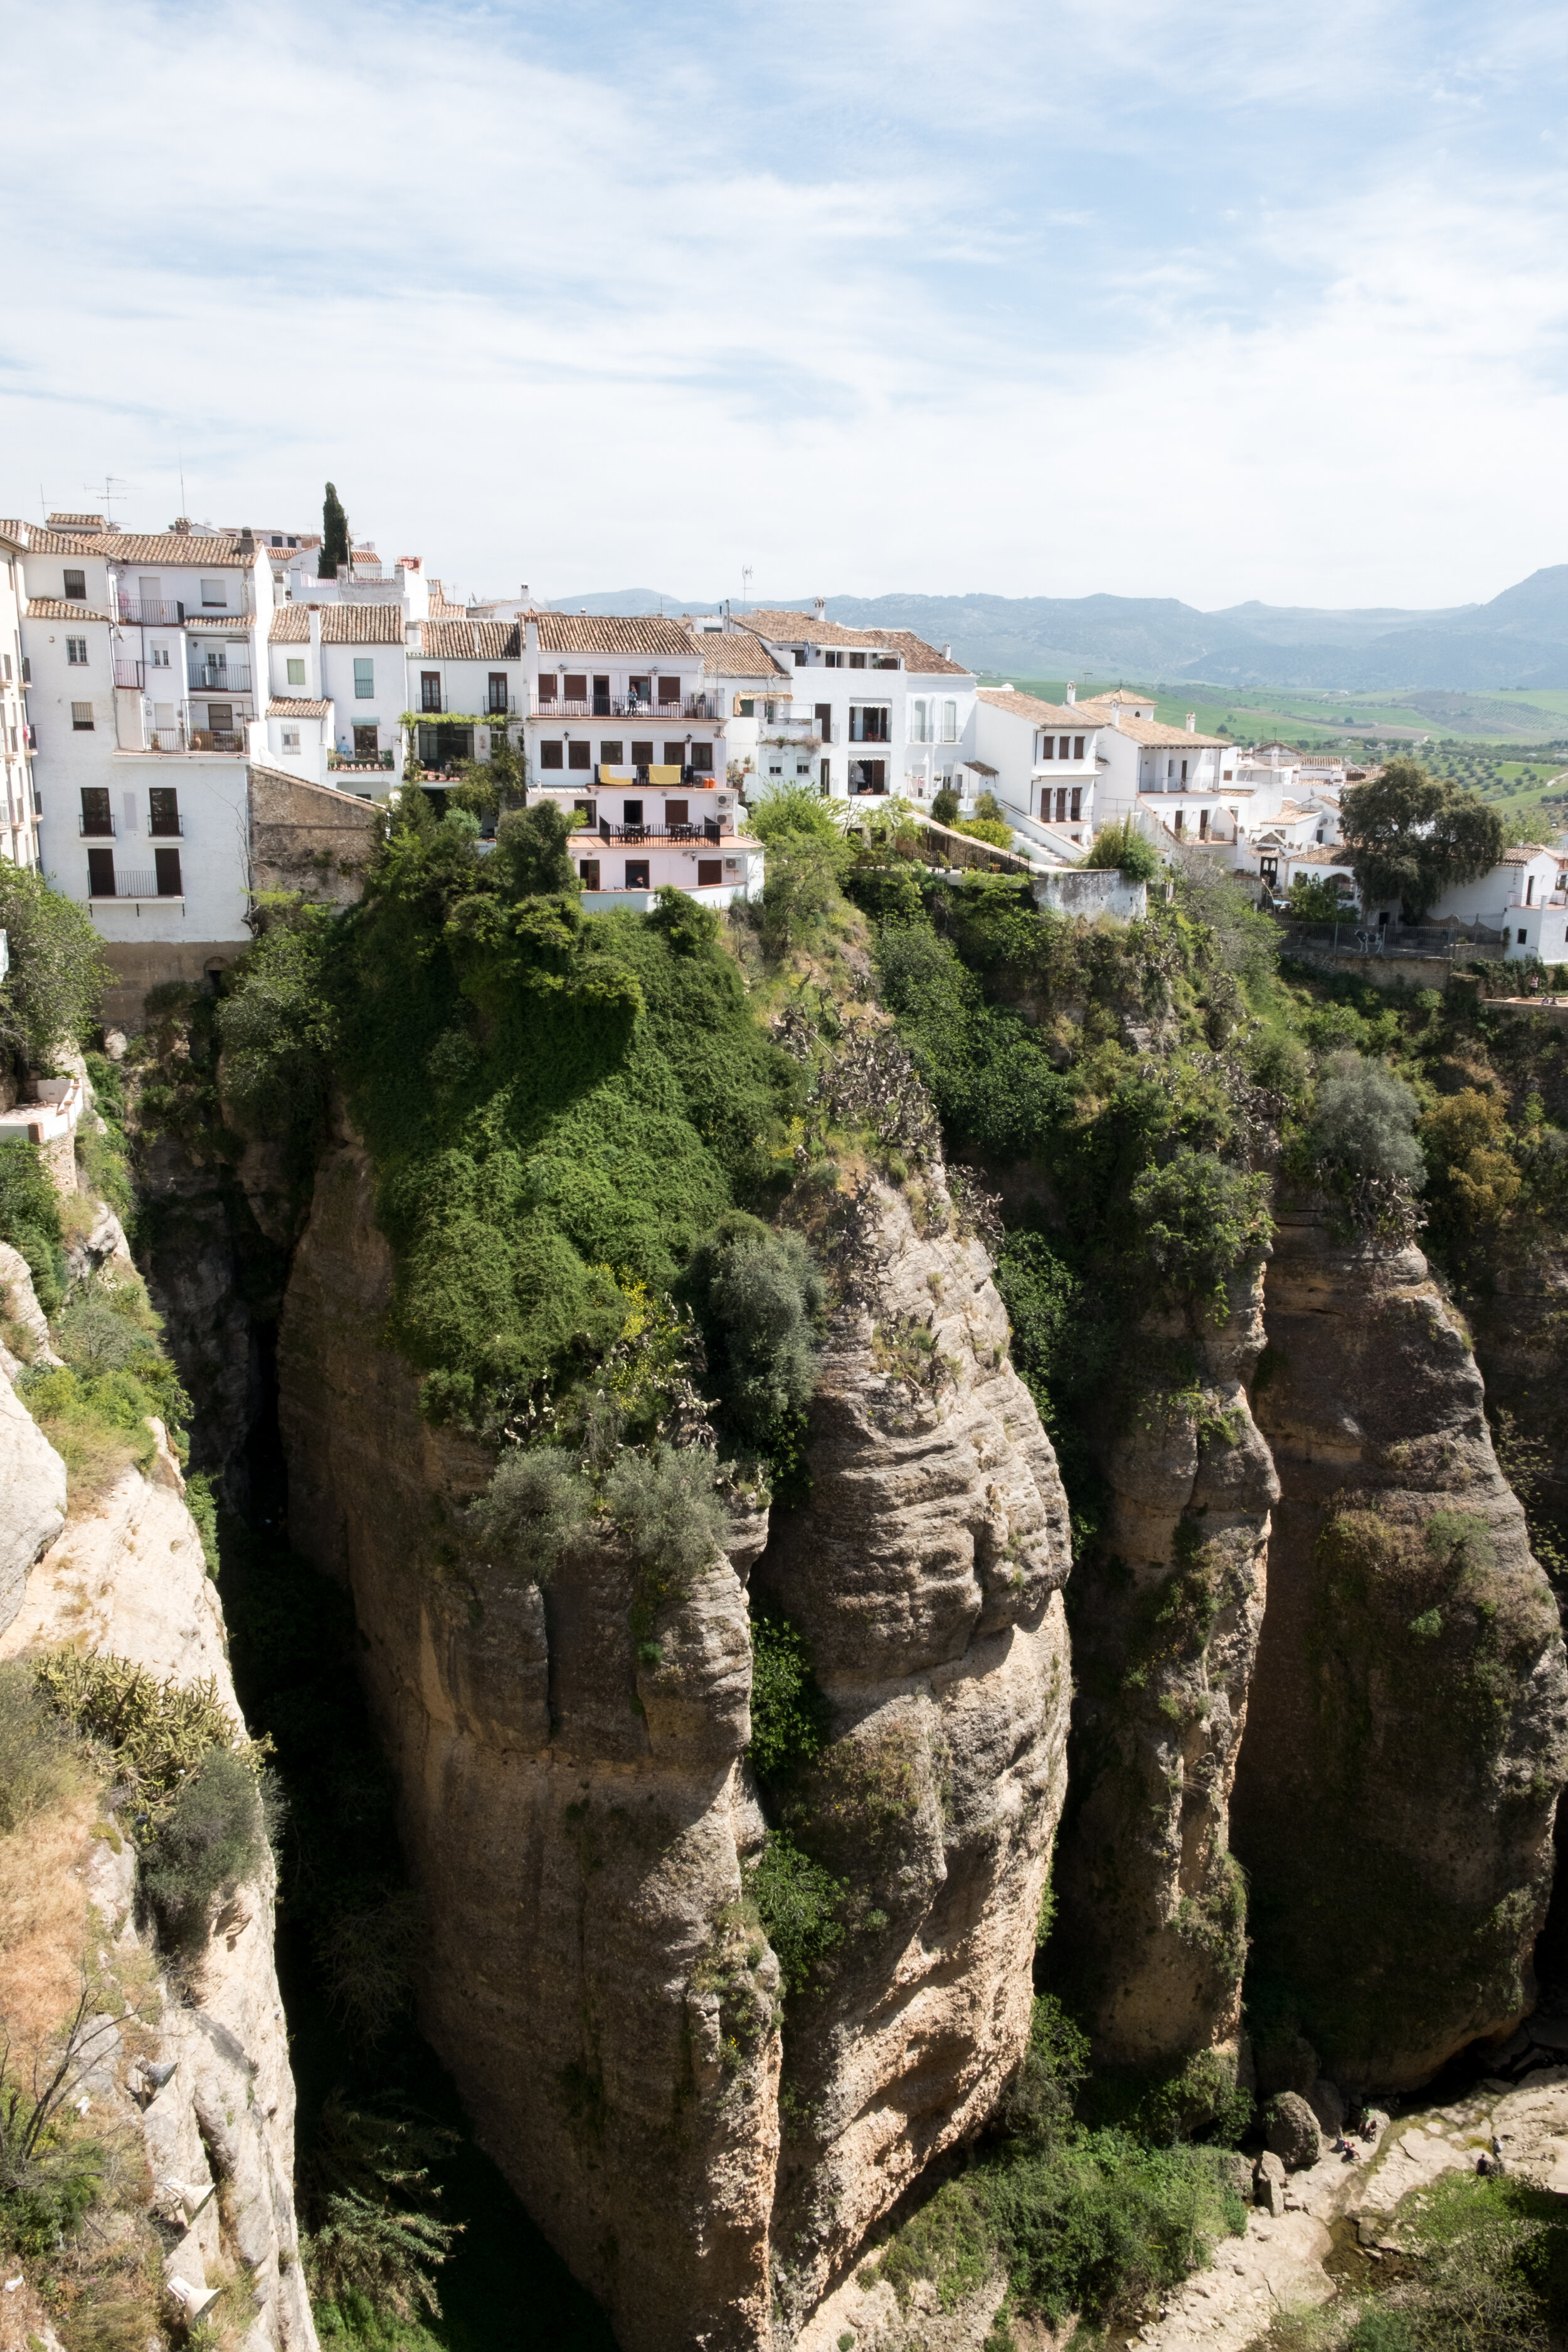 RONDA - Malaga - Ronda is like a wonderful open-air museum and is by far the most spectacular town of the Malaga province. Behind every corner you'll find an alley that's even more enchanting than the previous one. It's one of oldest towns in Spain and is famous worldwide for its dramatic escarpments and the 100 meter deep El Tajo gorge.